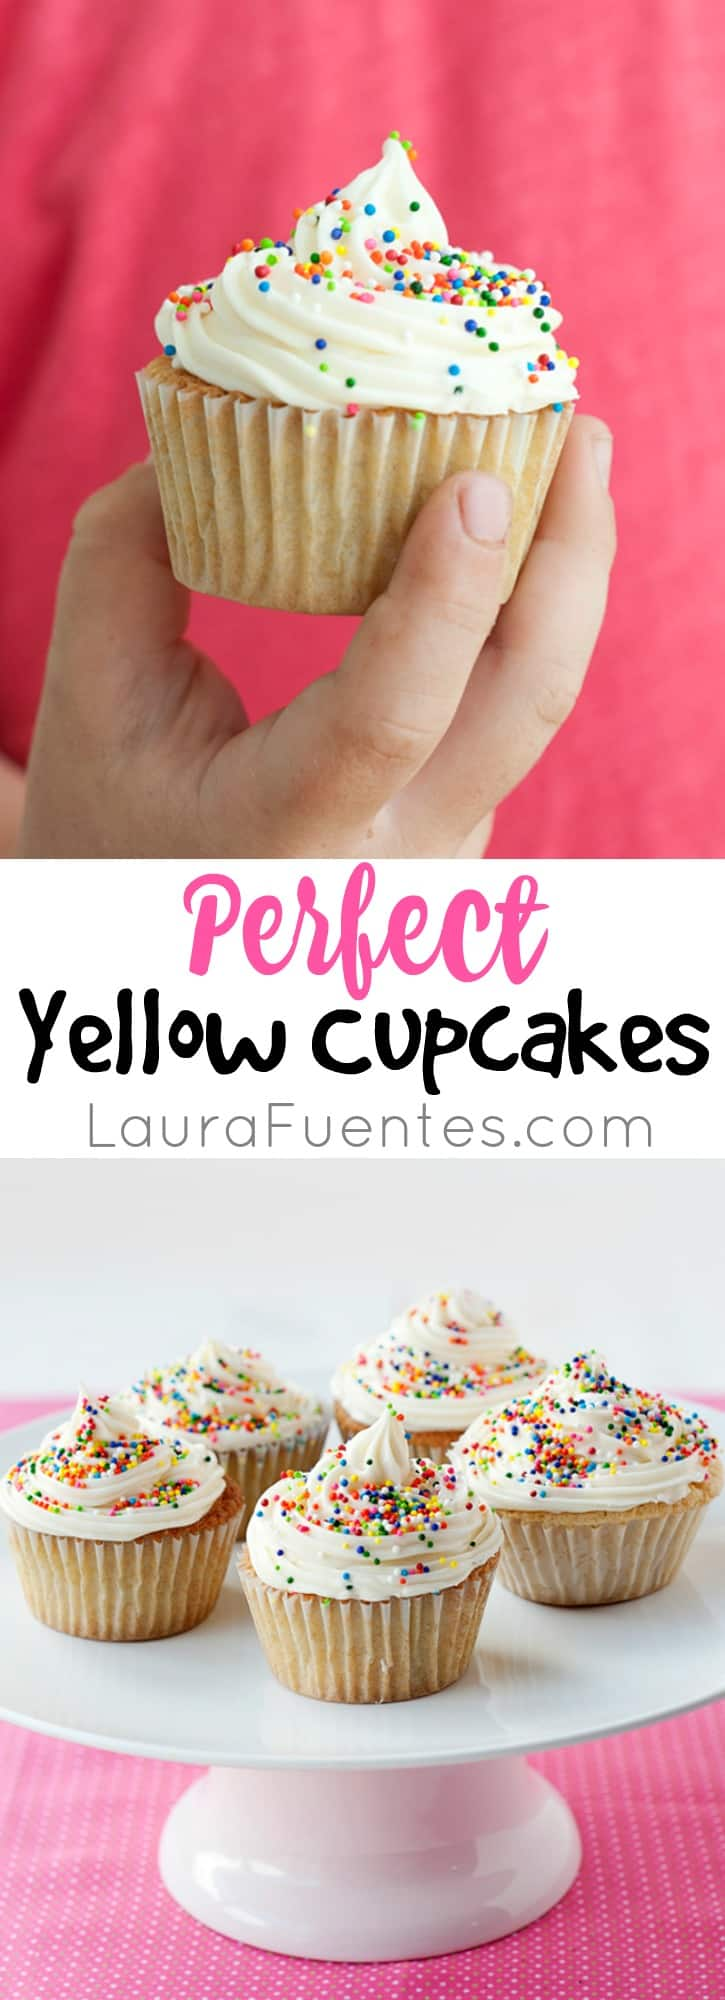 Perfect Yellow Cupcakes - Easy to make cupcakes that come out perfect every time! Recipe includes gluten free option.